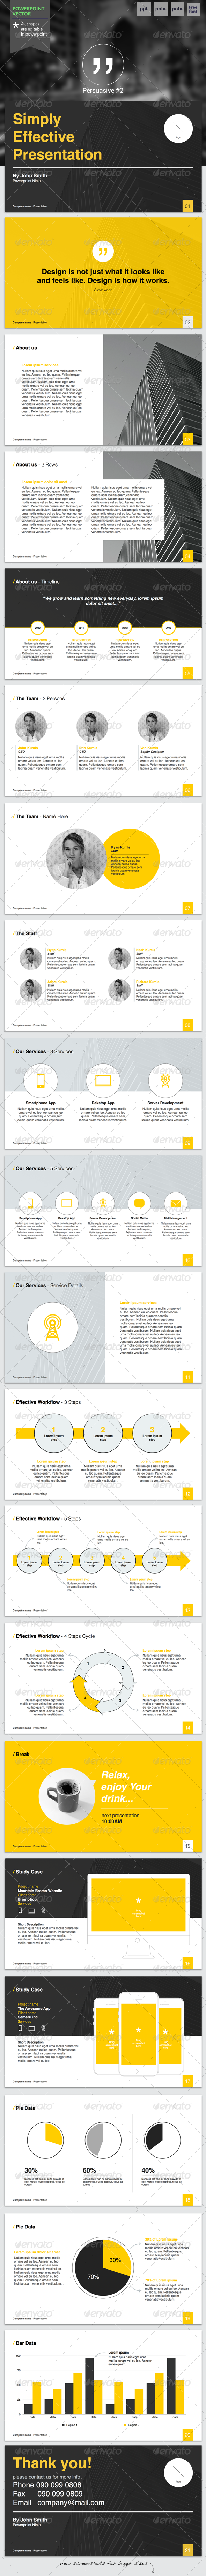 GraphicRiver Persuasive #2 Powerpoint Template 6490533